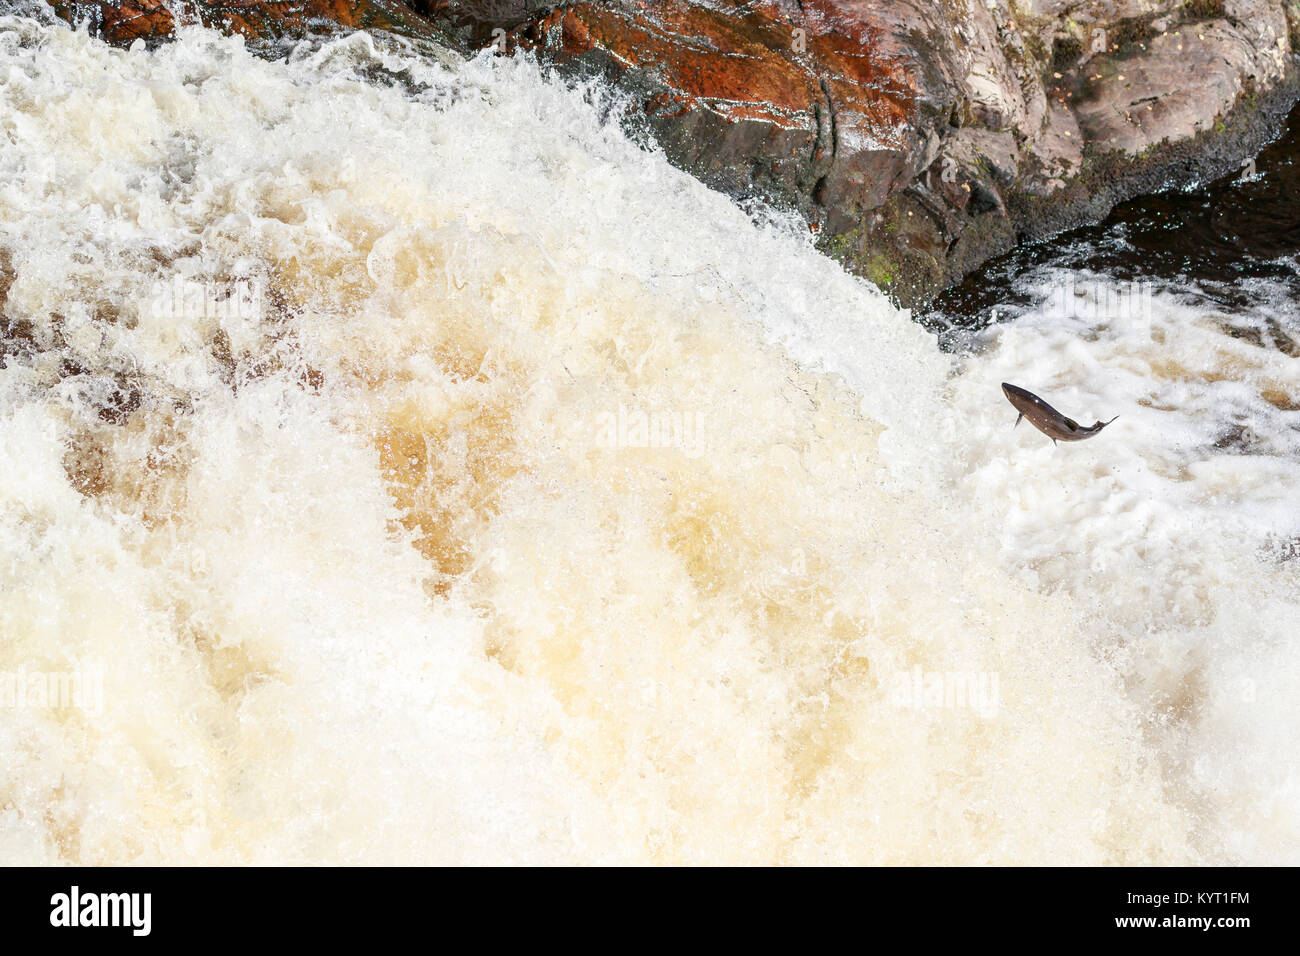 The mighty atlantic salmon travelling to spawning grounds during the summer in the Scottish highland. The salmon - Stock Image